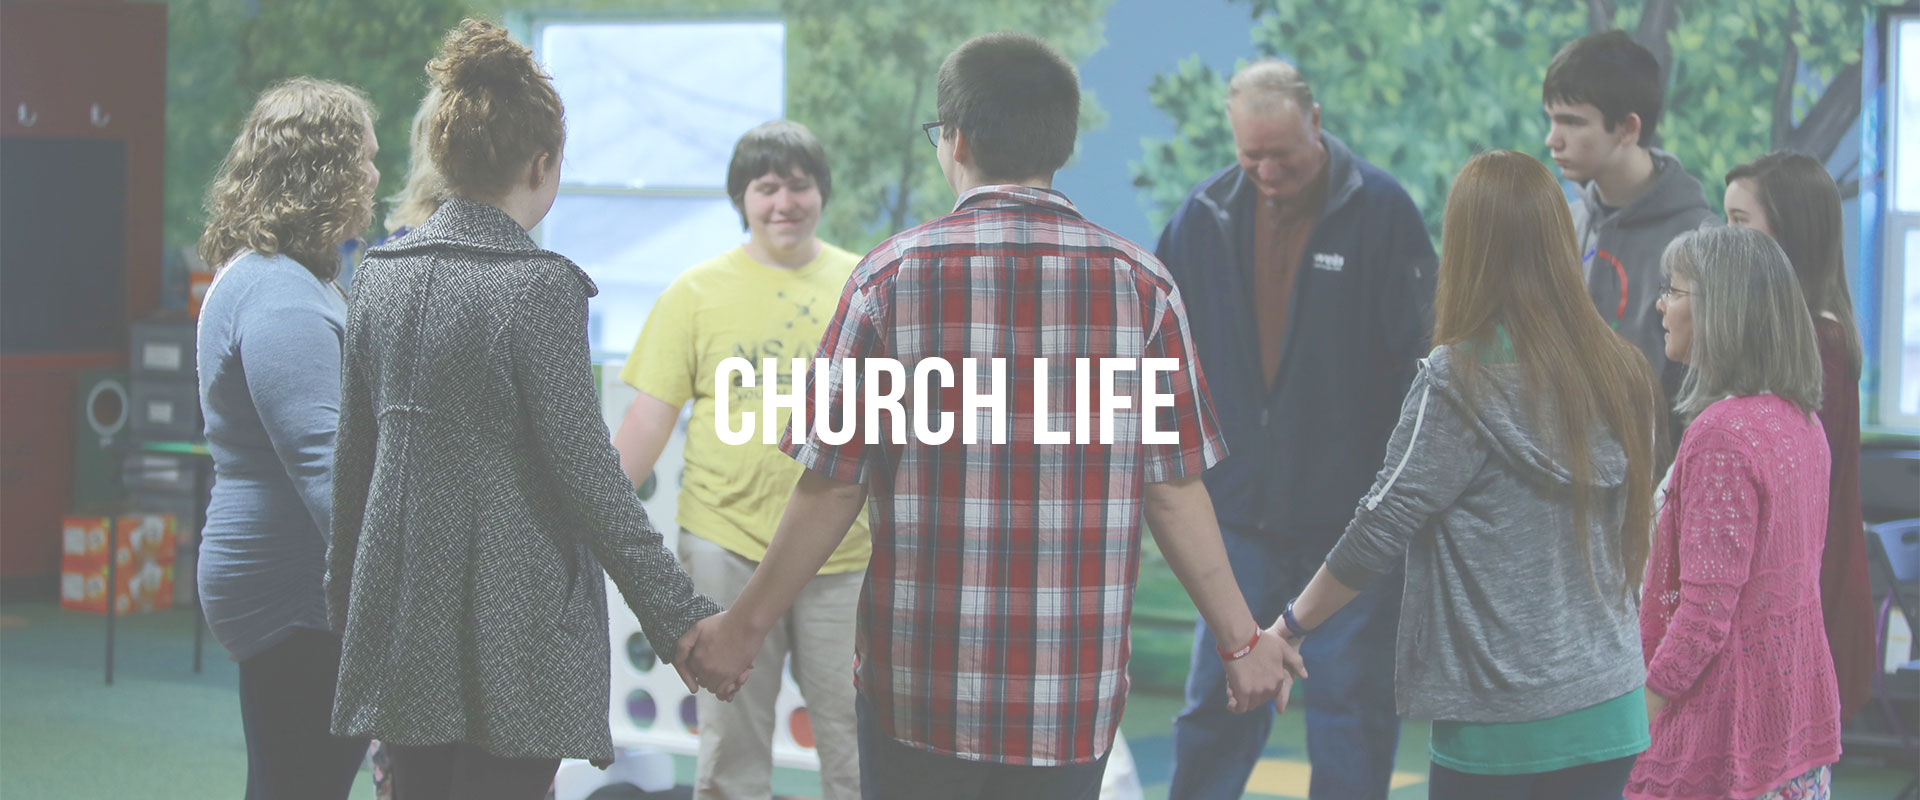 church-life-header